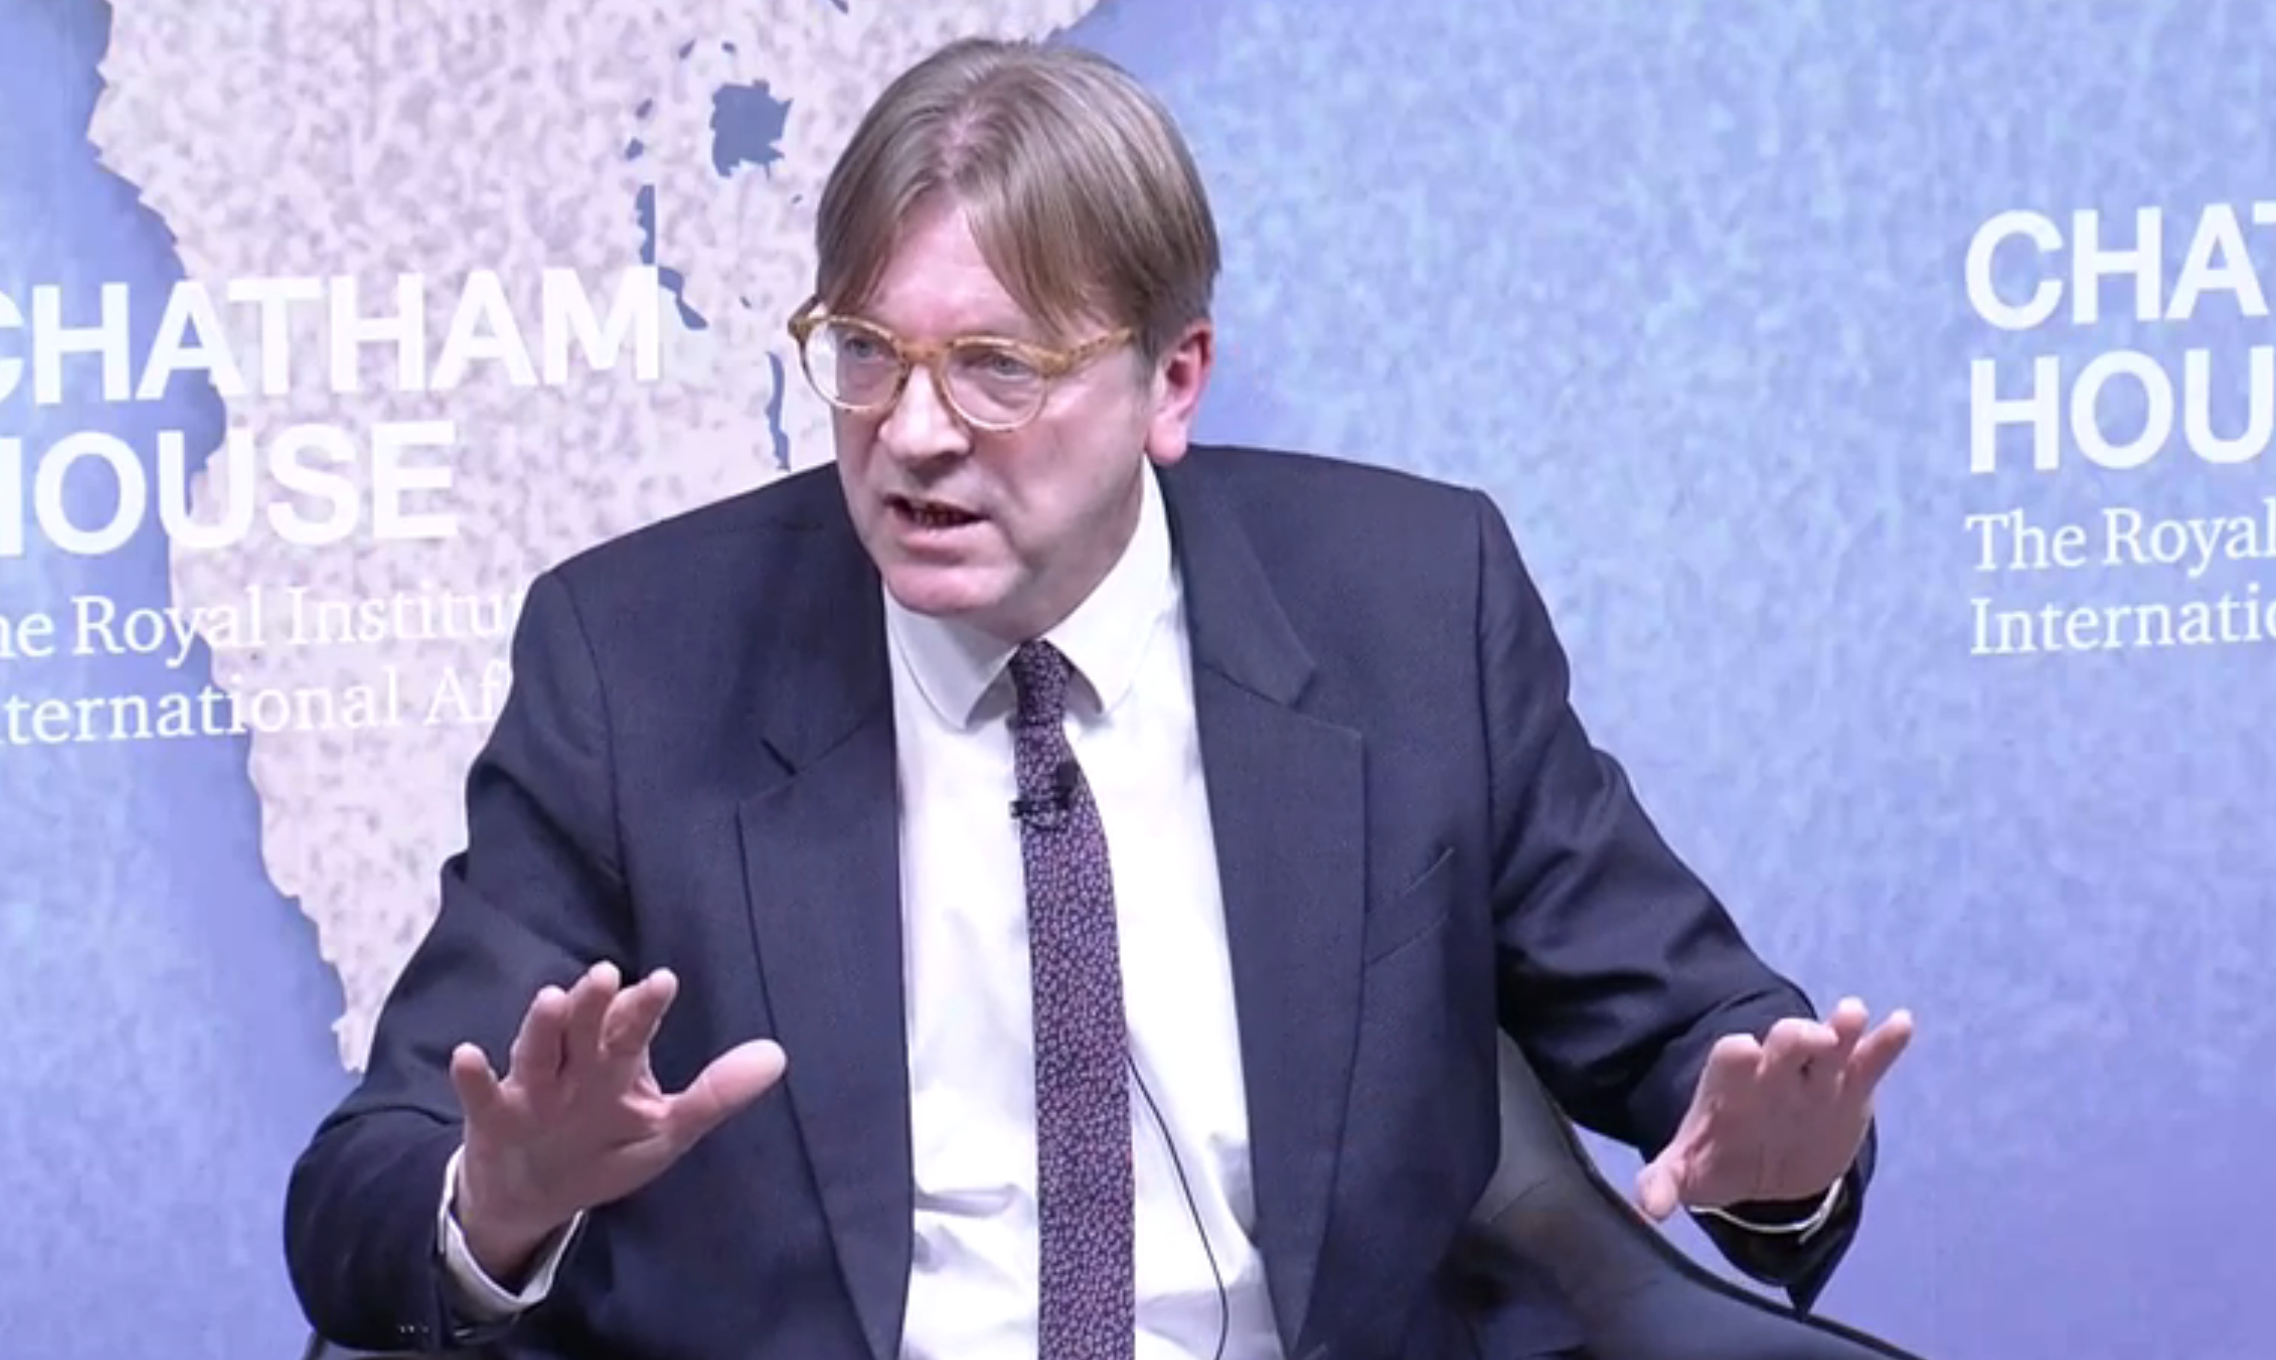 Donald Trump is a threat to the European Union, EU Parliament chief Brexit negotiator Guy Verhofstadt says